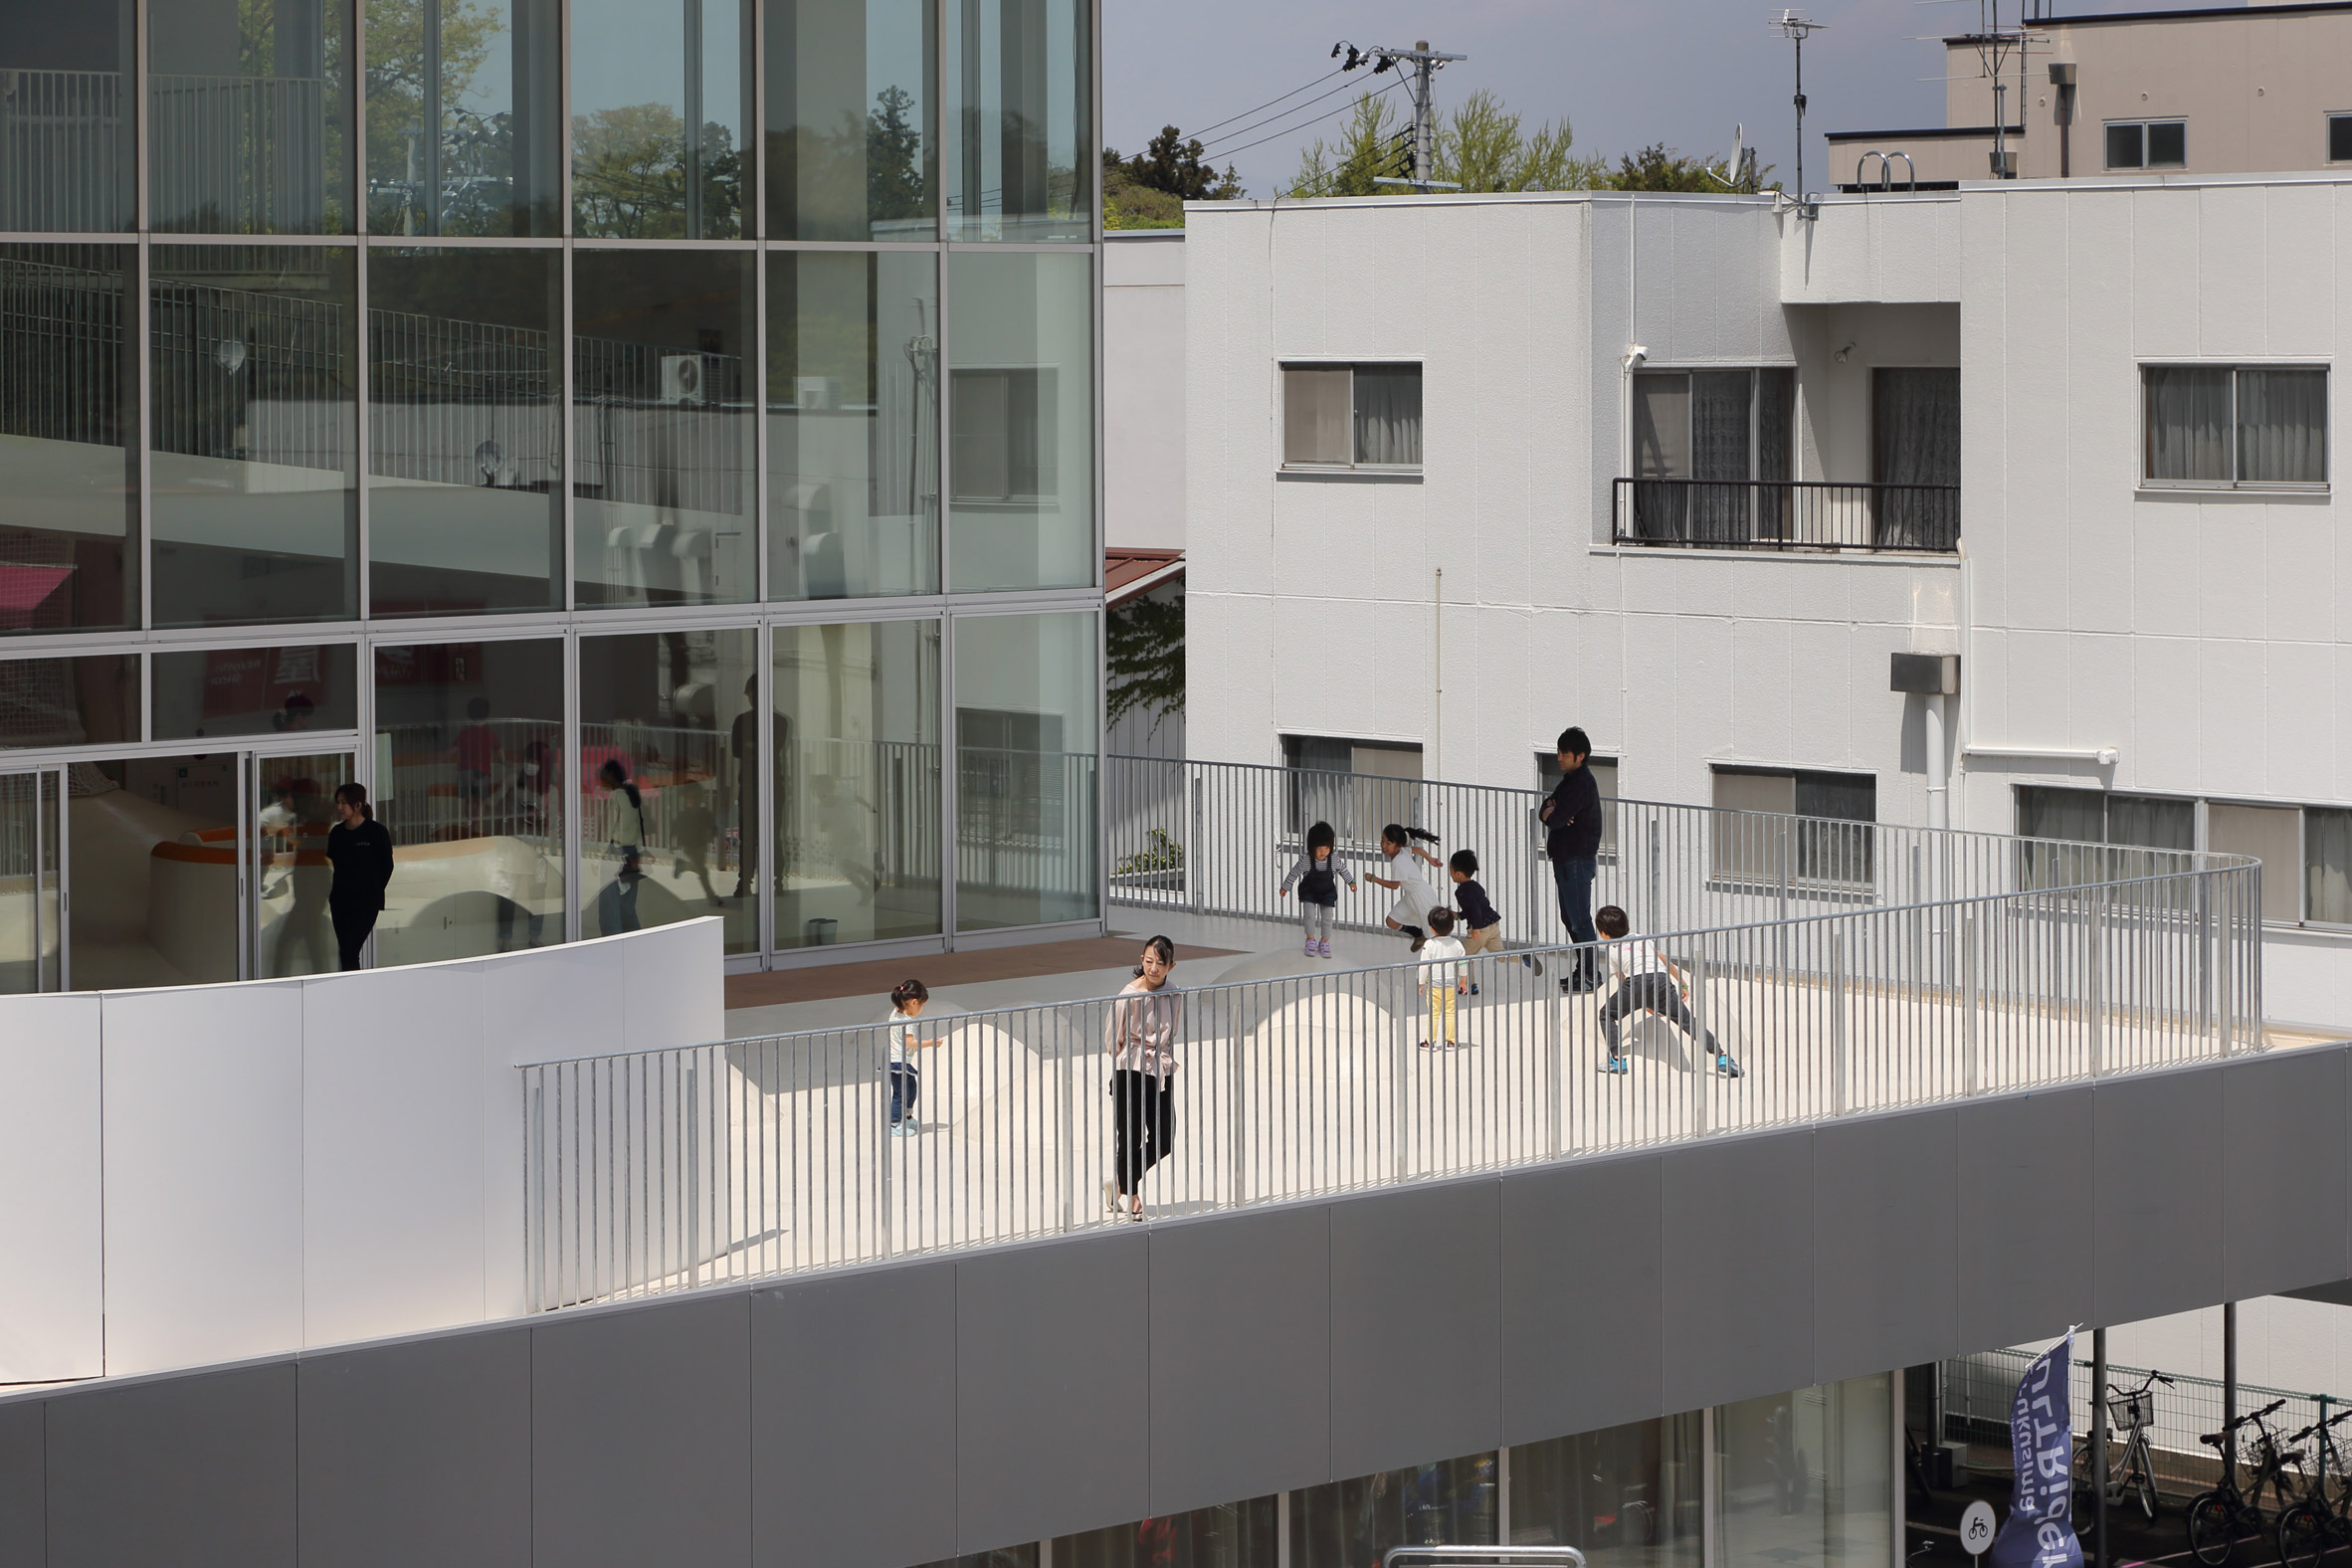 Children are pictured playing on a terrace